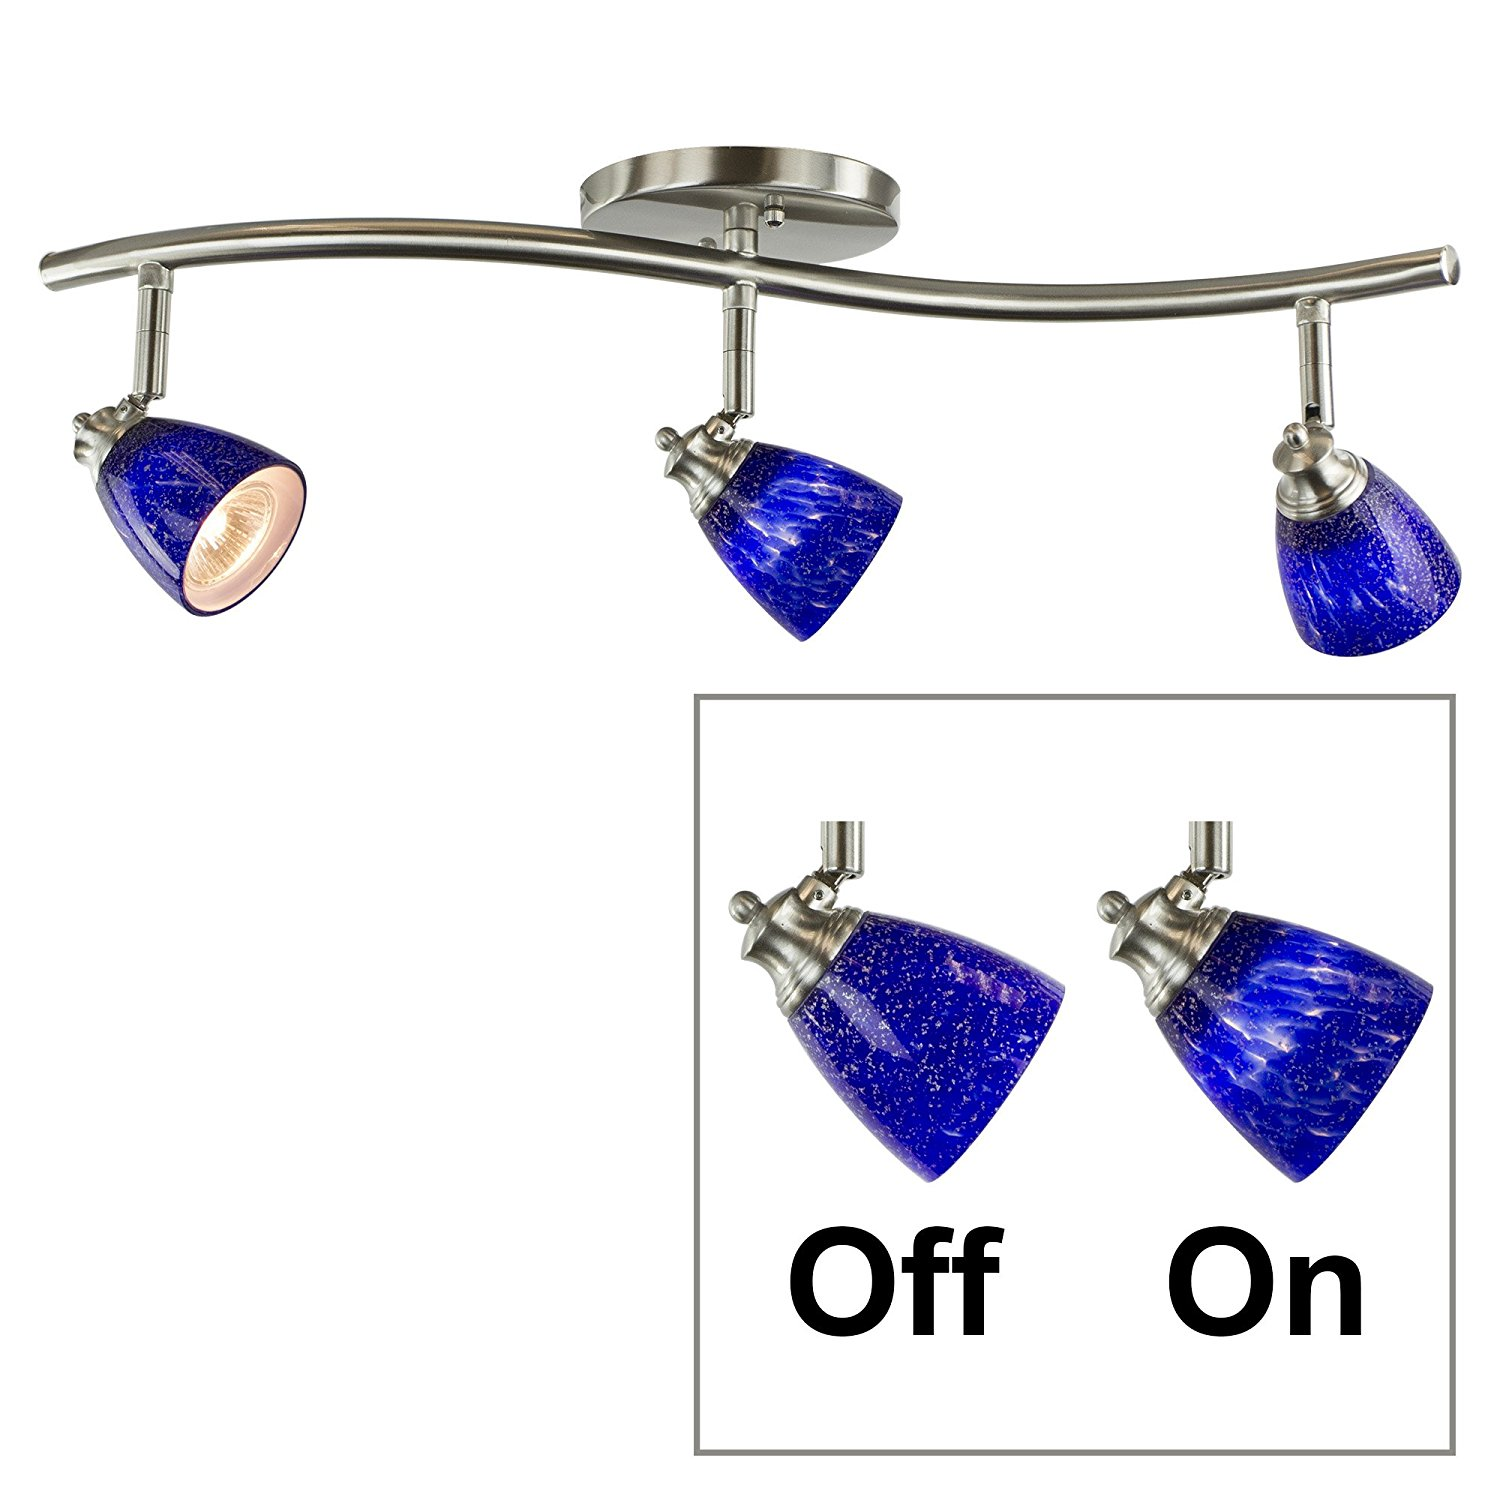 blue track lighting. 3-Light Bar Track Lighting Kit D268-23C-BS-BLS - D268 Blue A